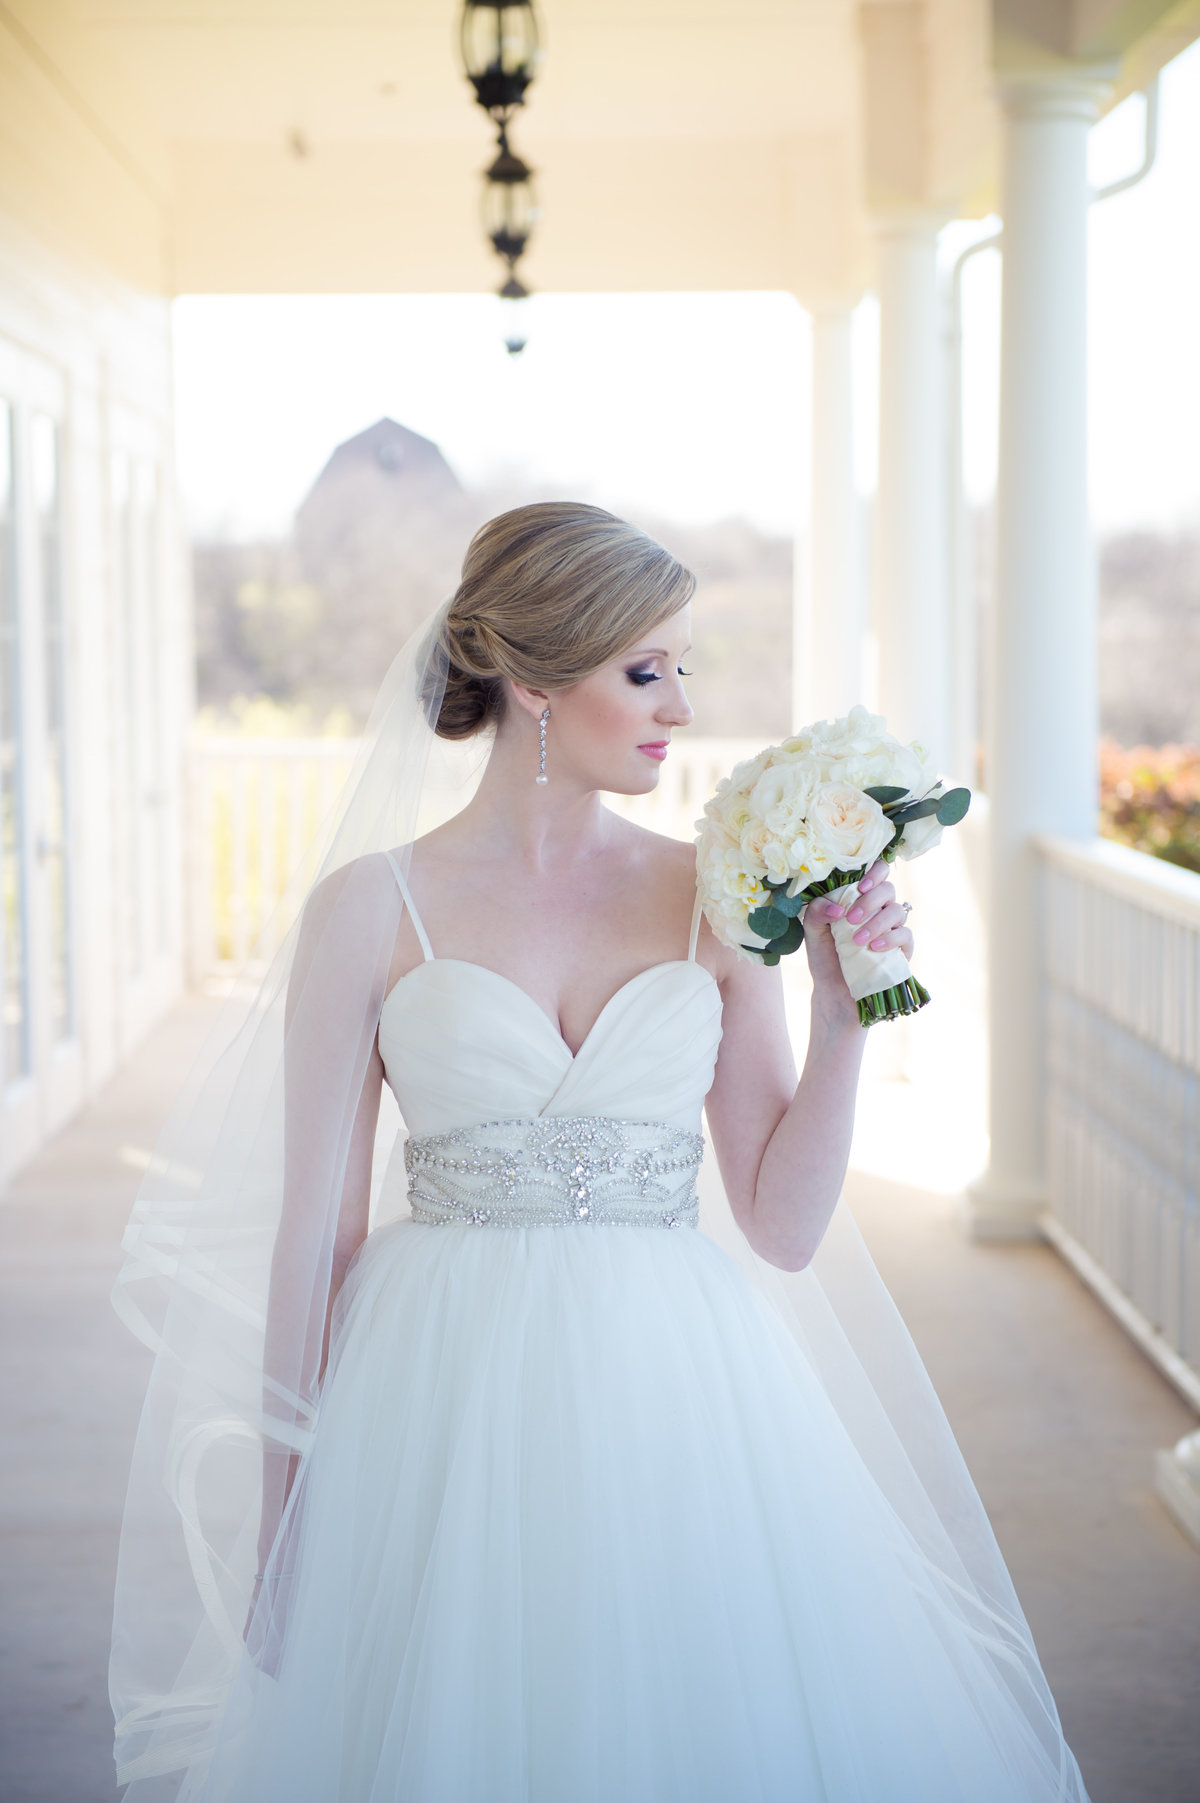 Bride at The Milestone Krum by Brittany Barclay Photography